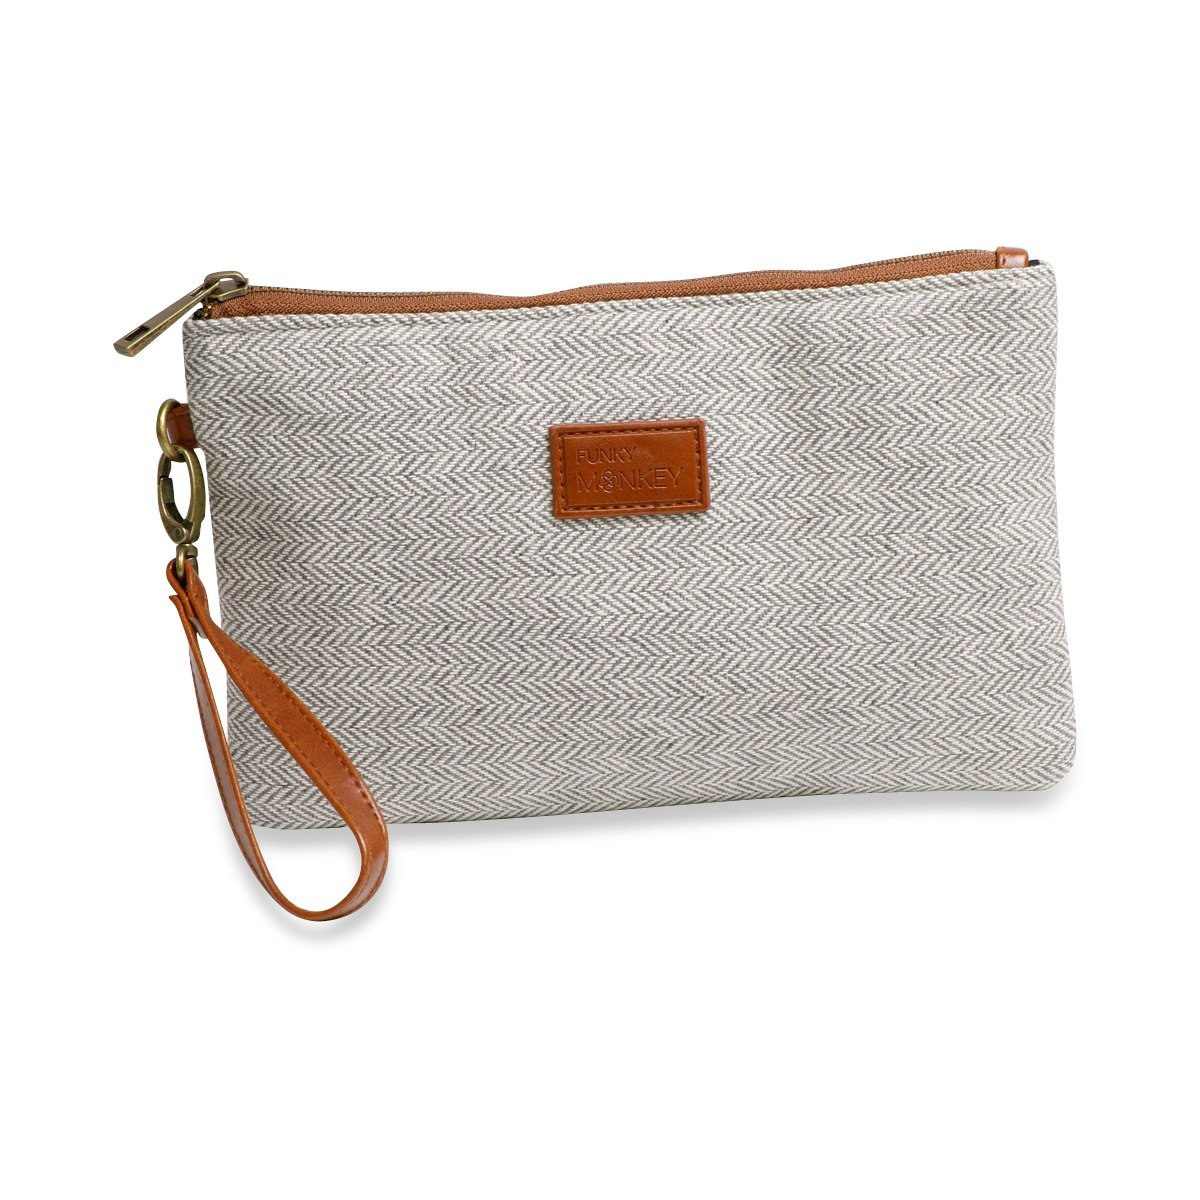 {Grace Collection} Wristlet Wallet Clutch Bag - Phone Purse Handbag - Small, Medium, Large Size - Gray & White Herringbone Style - Funky Monkey Fashion (Large)